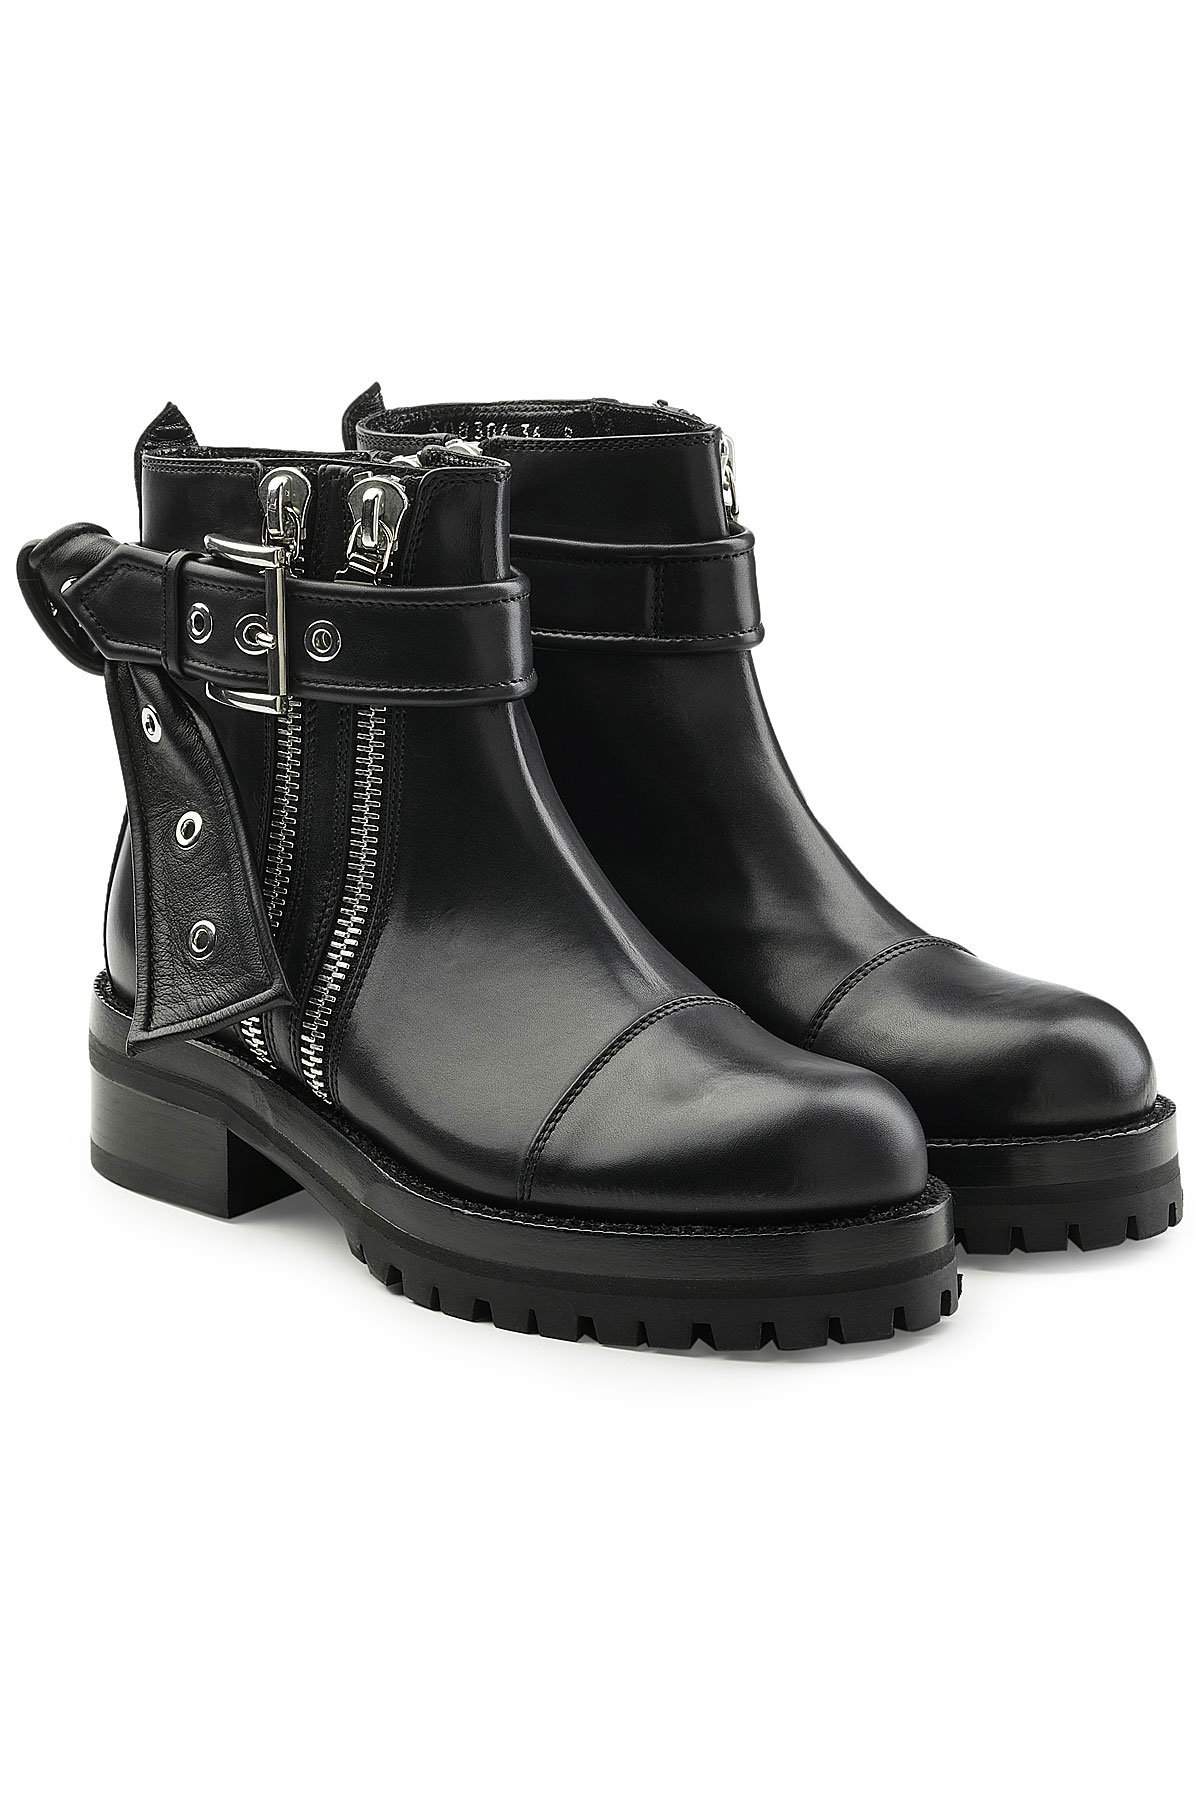 Alexander McQueenLeather Ankle Boots with Buckles Gr. EU 43 Cr0TsOl